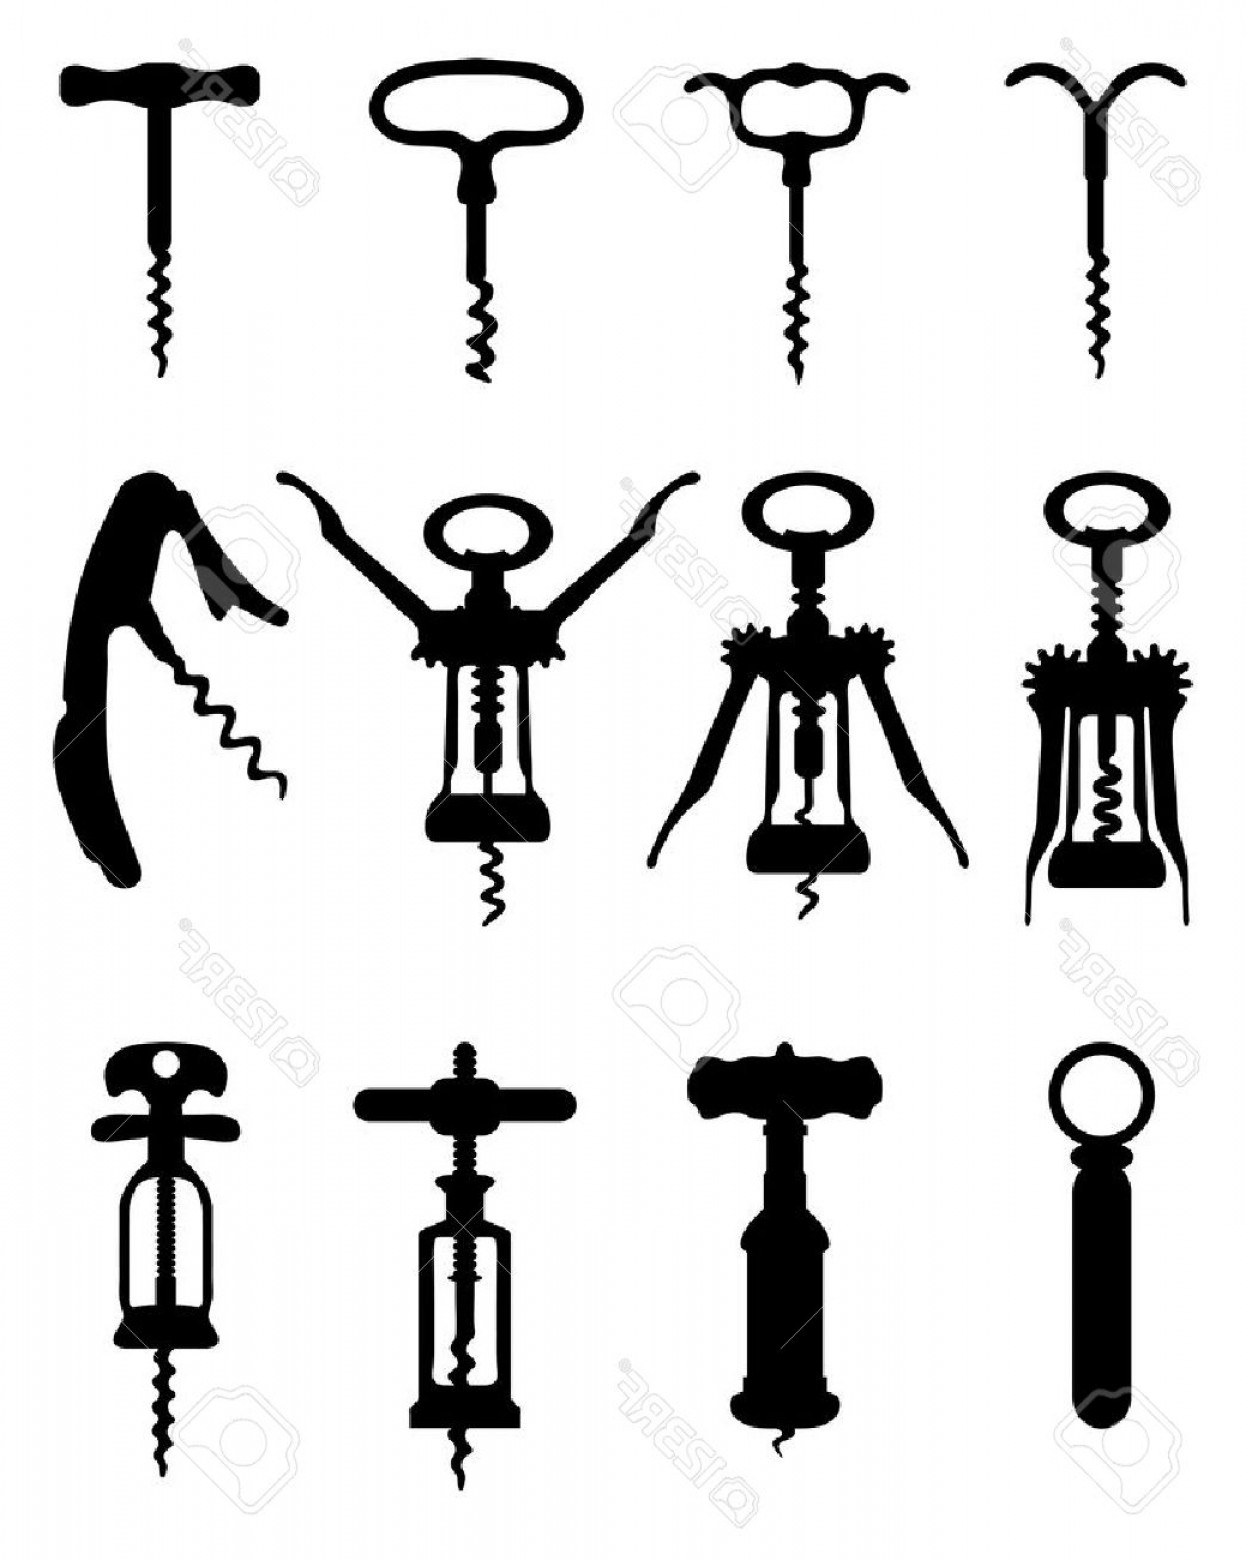 1246x1560 Cork Screw Vector Art Lazttweet